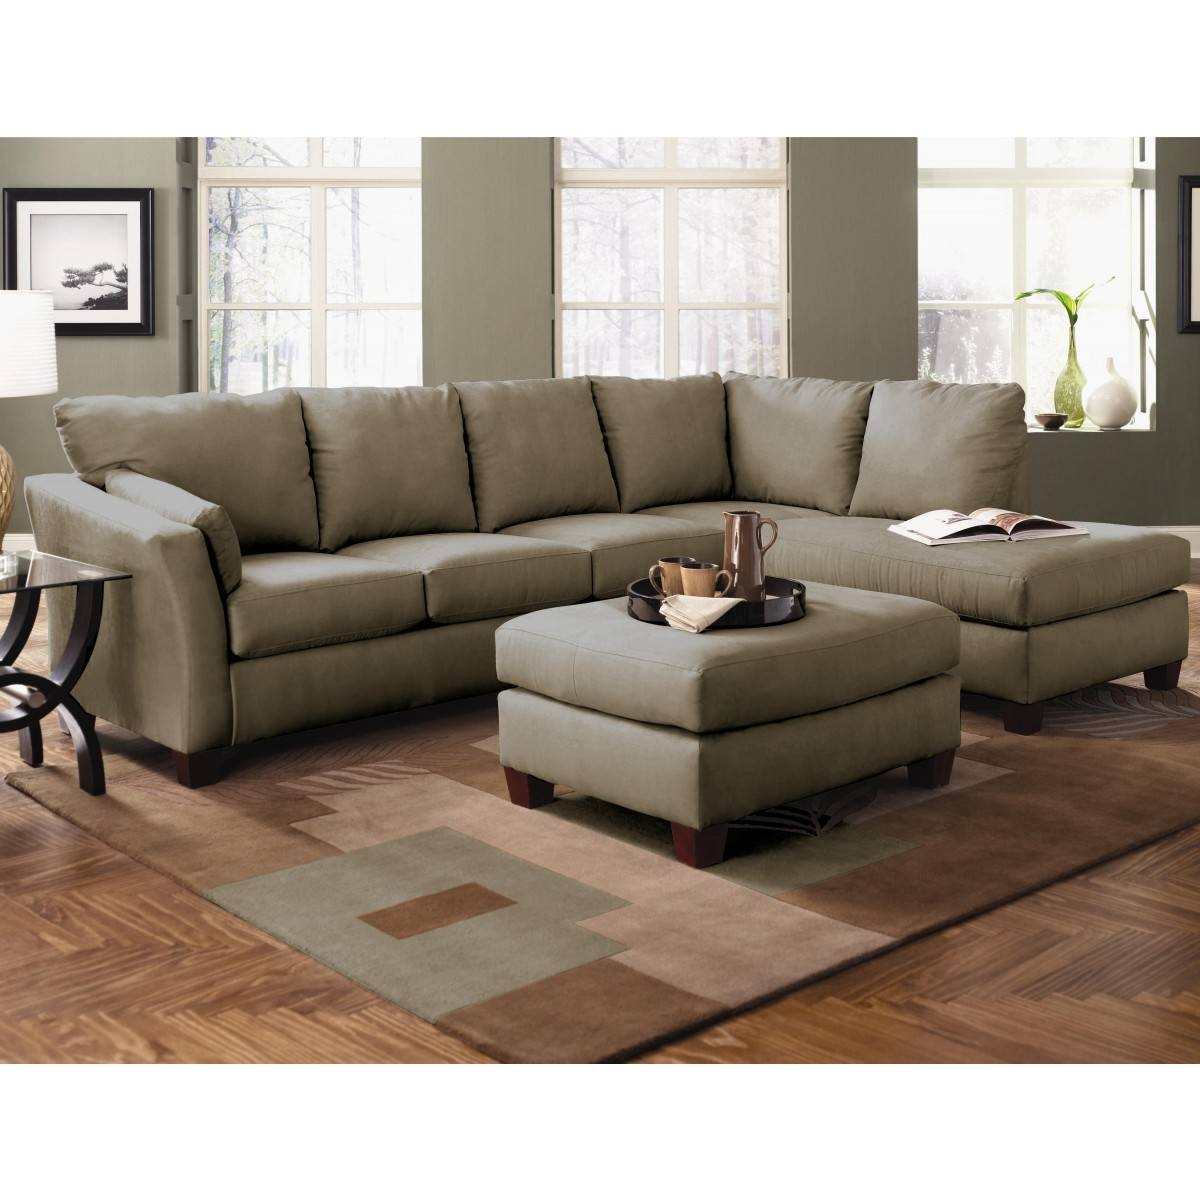 Green Sectional Sofa With Chaise 42 With Green Sectional Sofa With regarding Green Sectional Sofa With Chaise (Image 13 of 30)